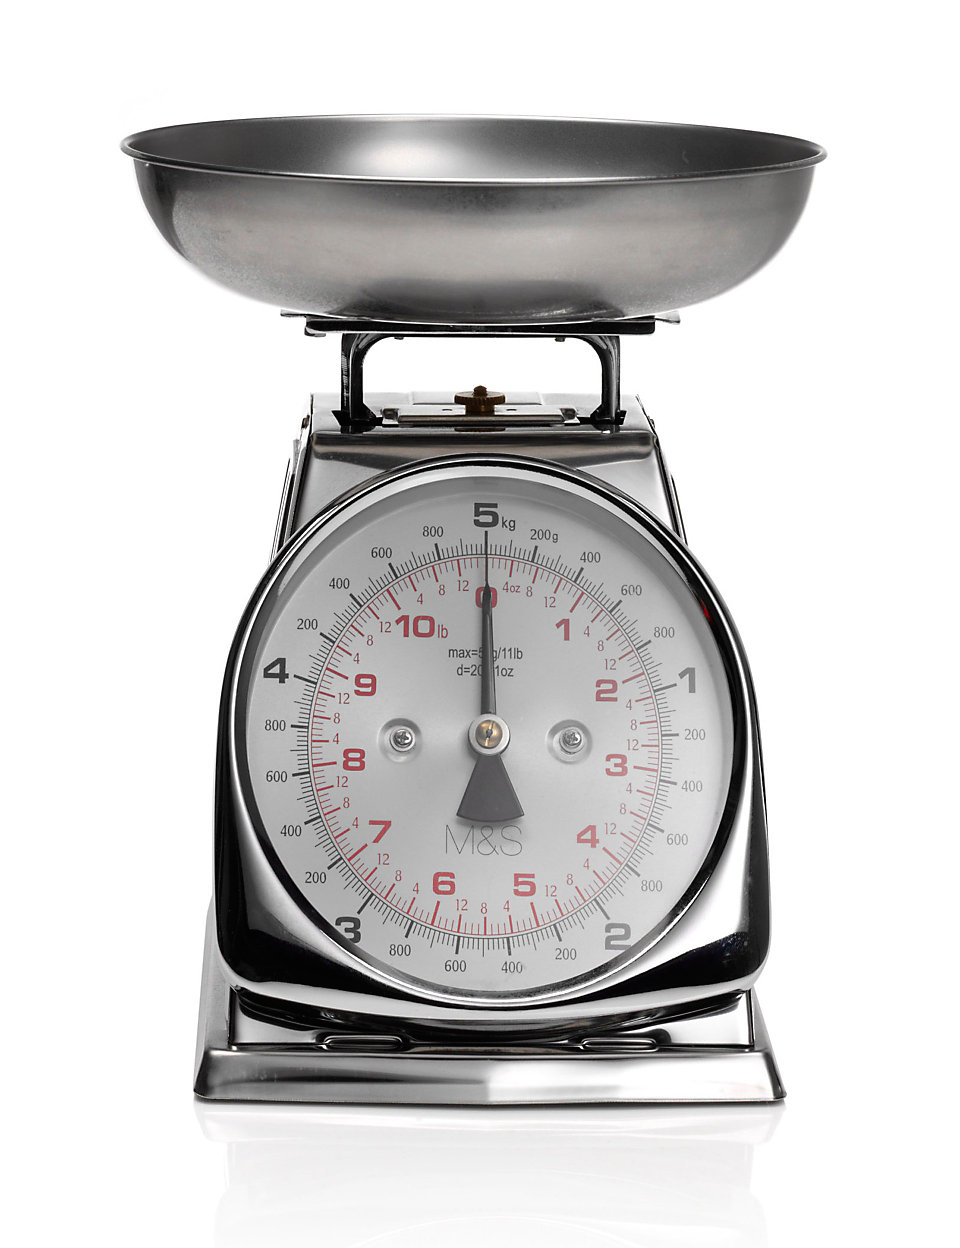 M&S mechanical scales